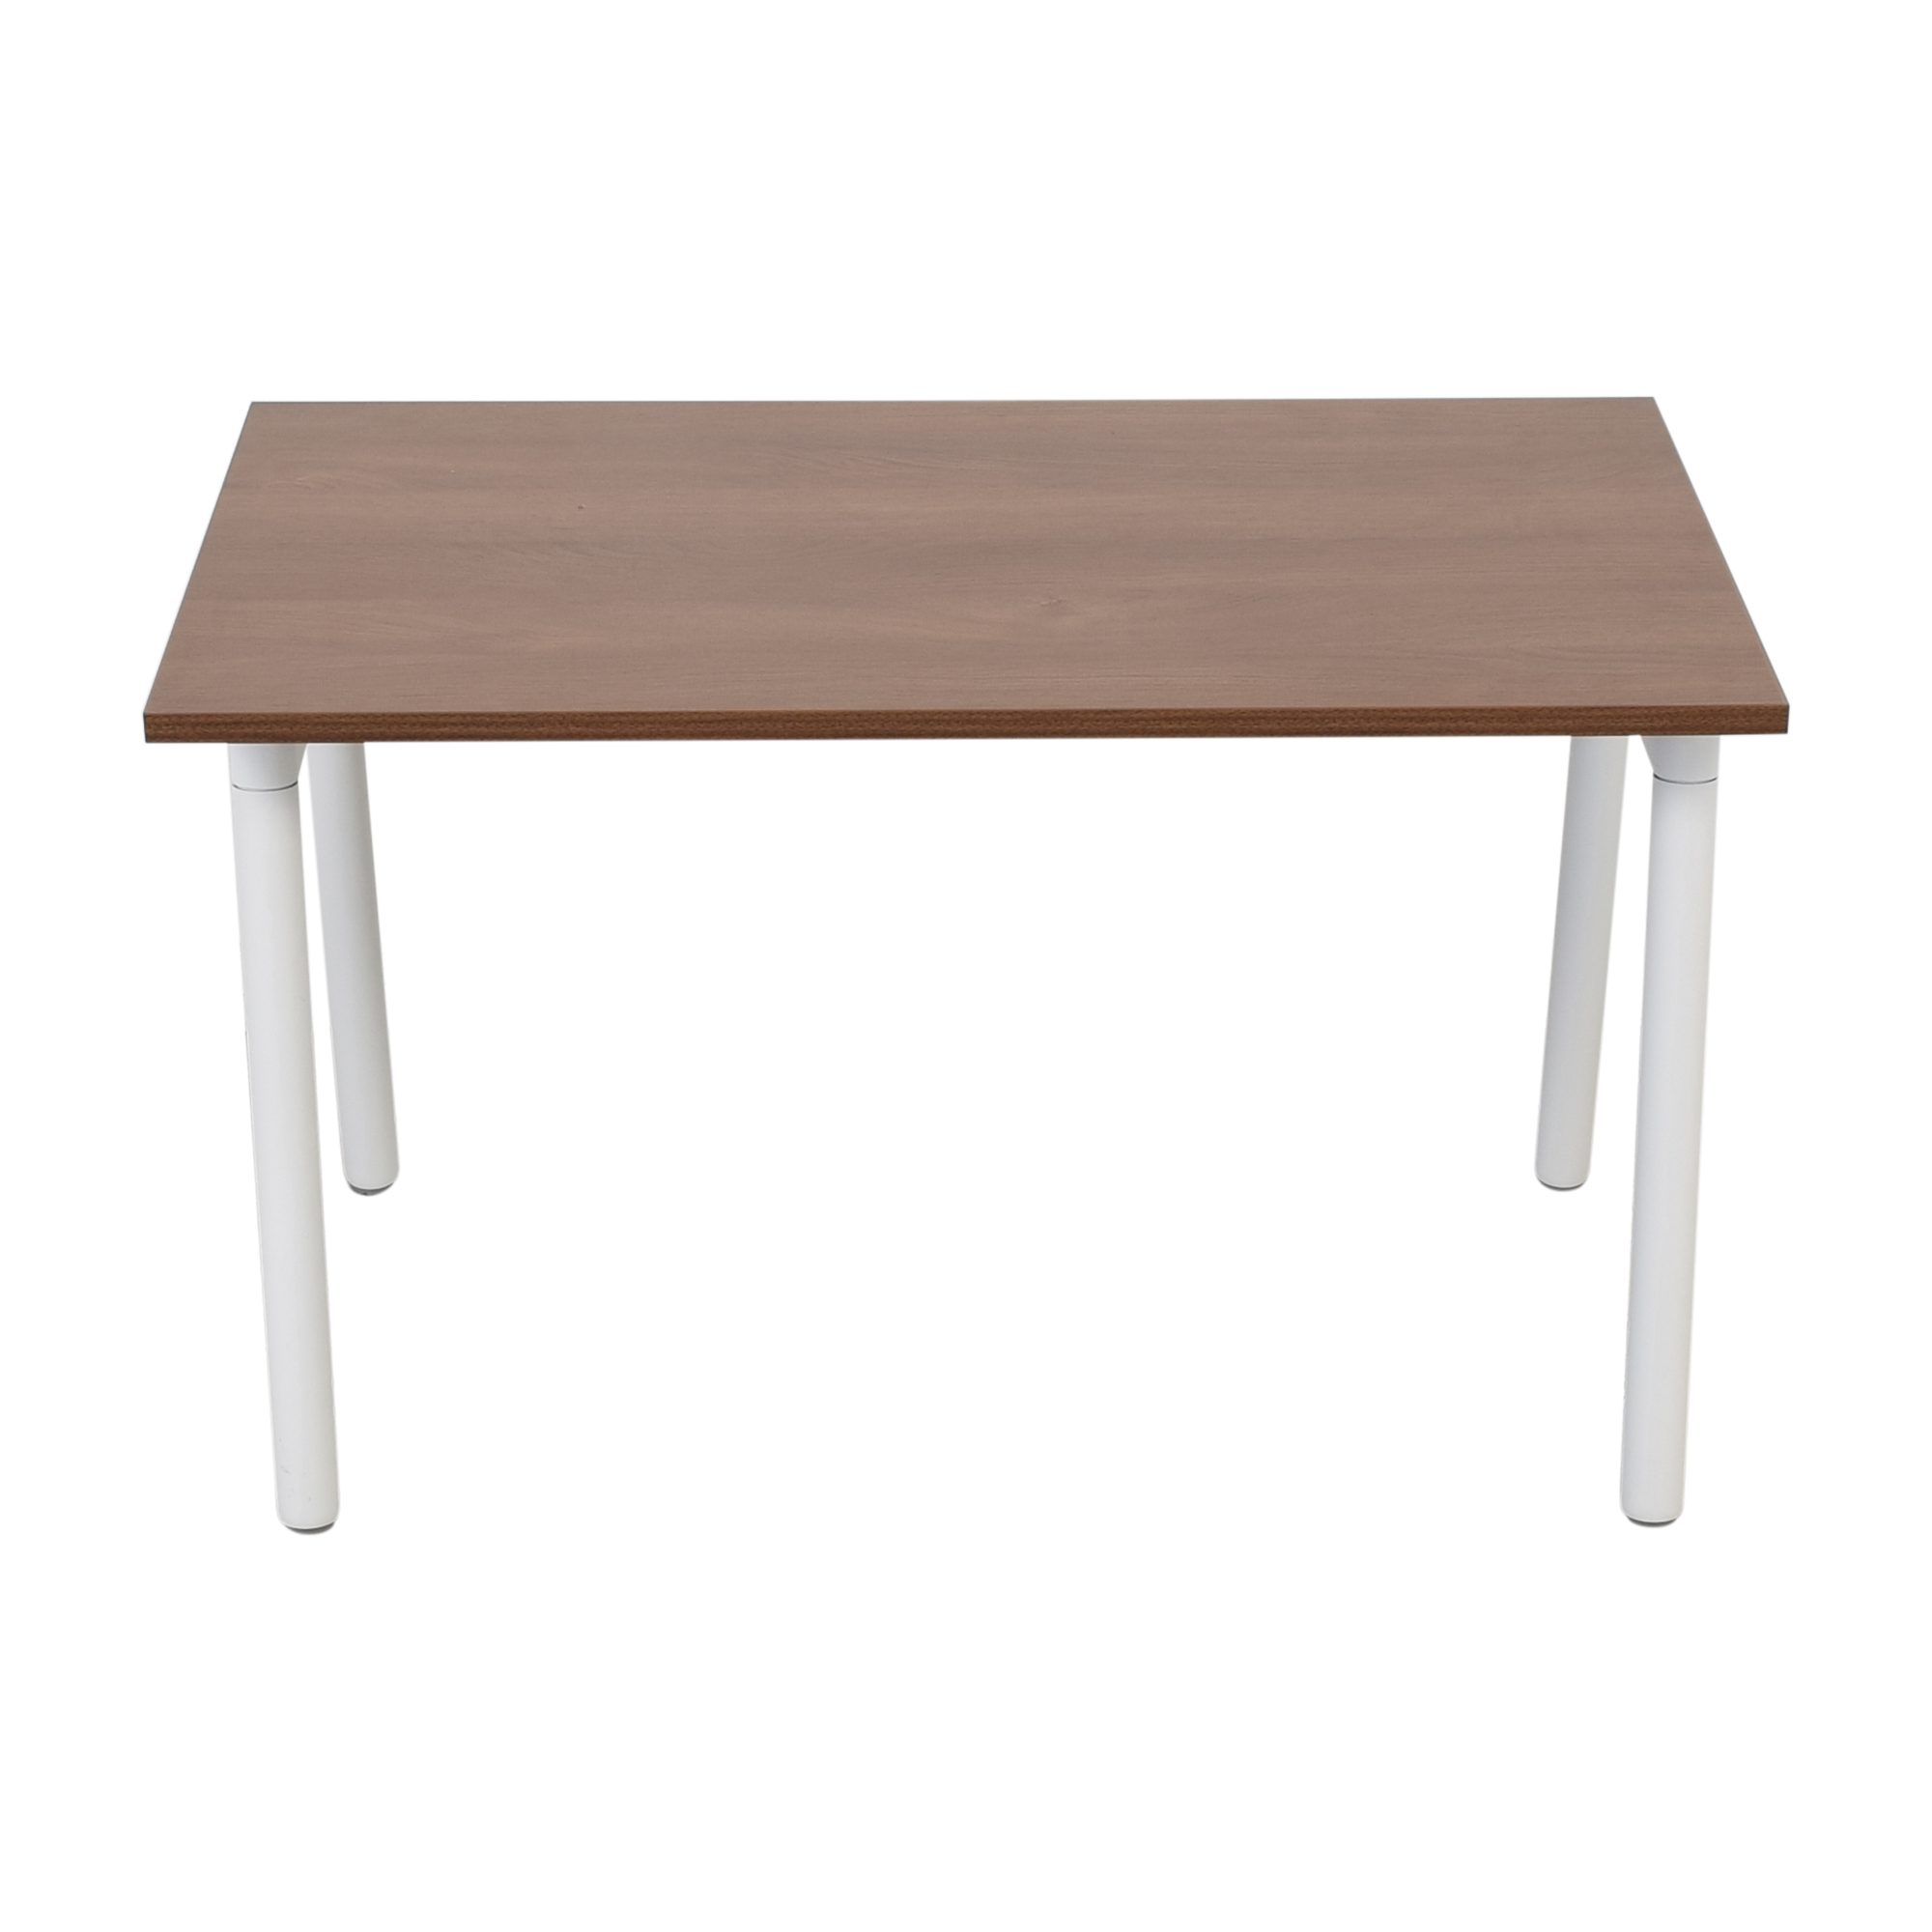 Poppin Poppin Series A Single Desk for One used